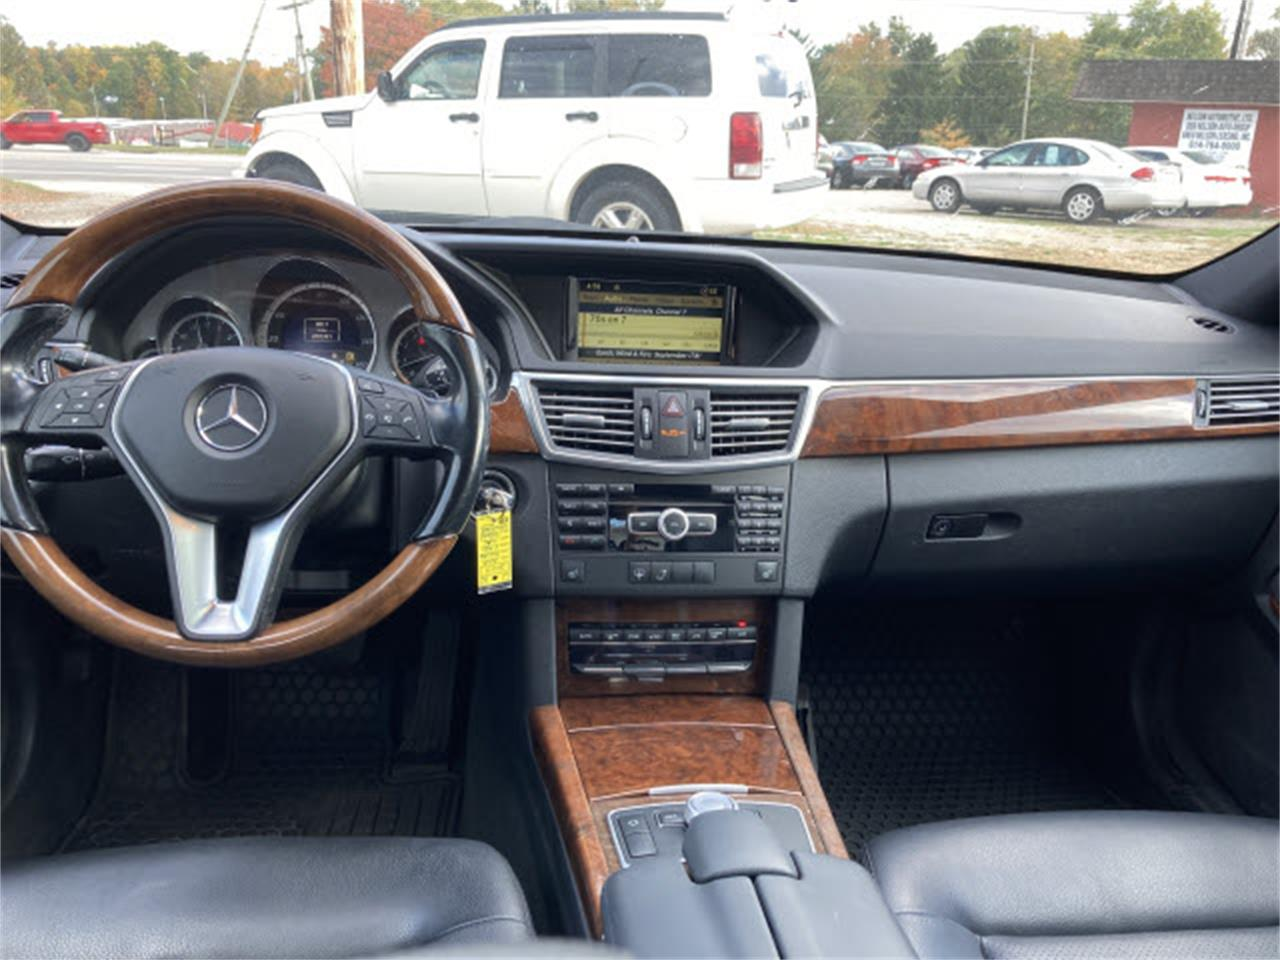 2012 Mercedes-Benz E-Class (CC-1413523) for sale in Marysville, Ohio